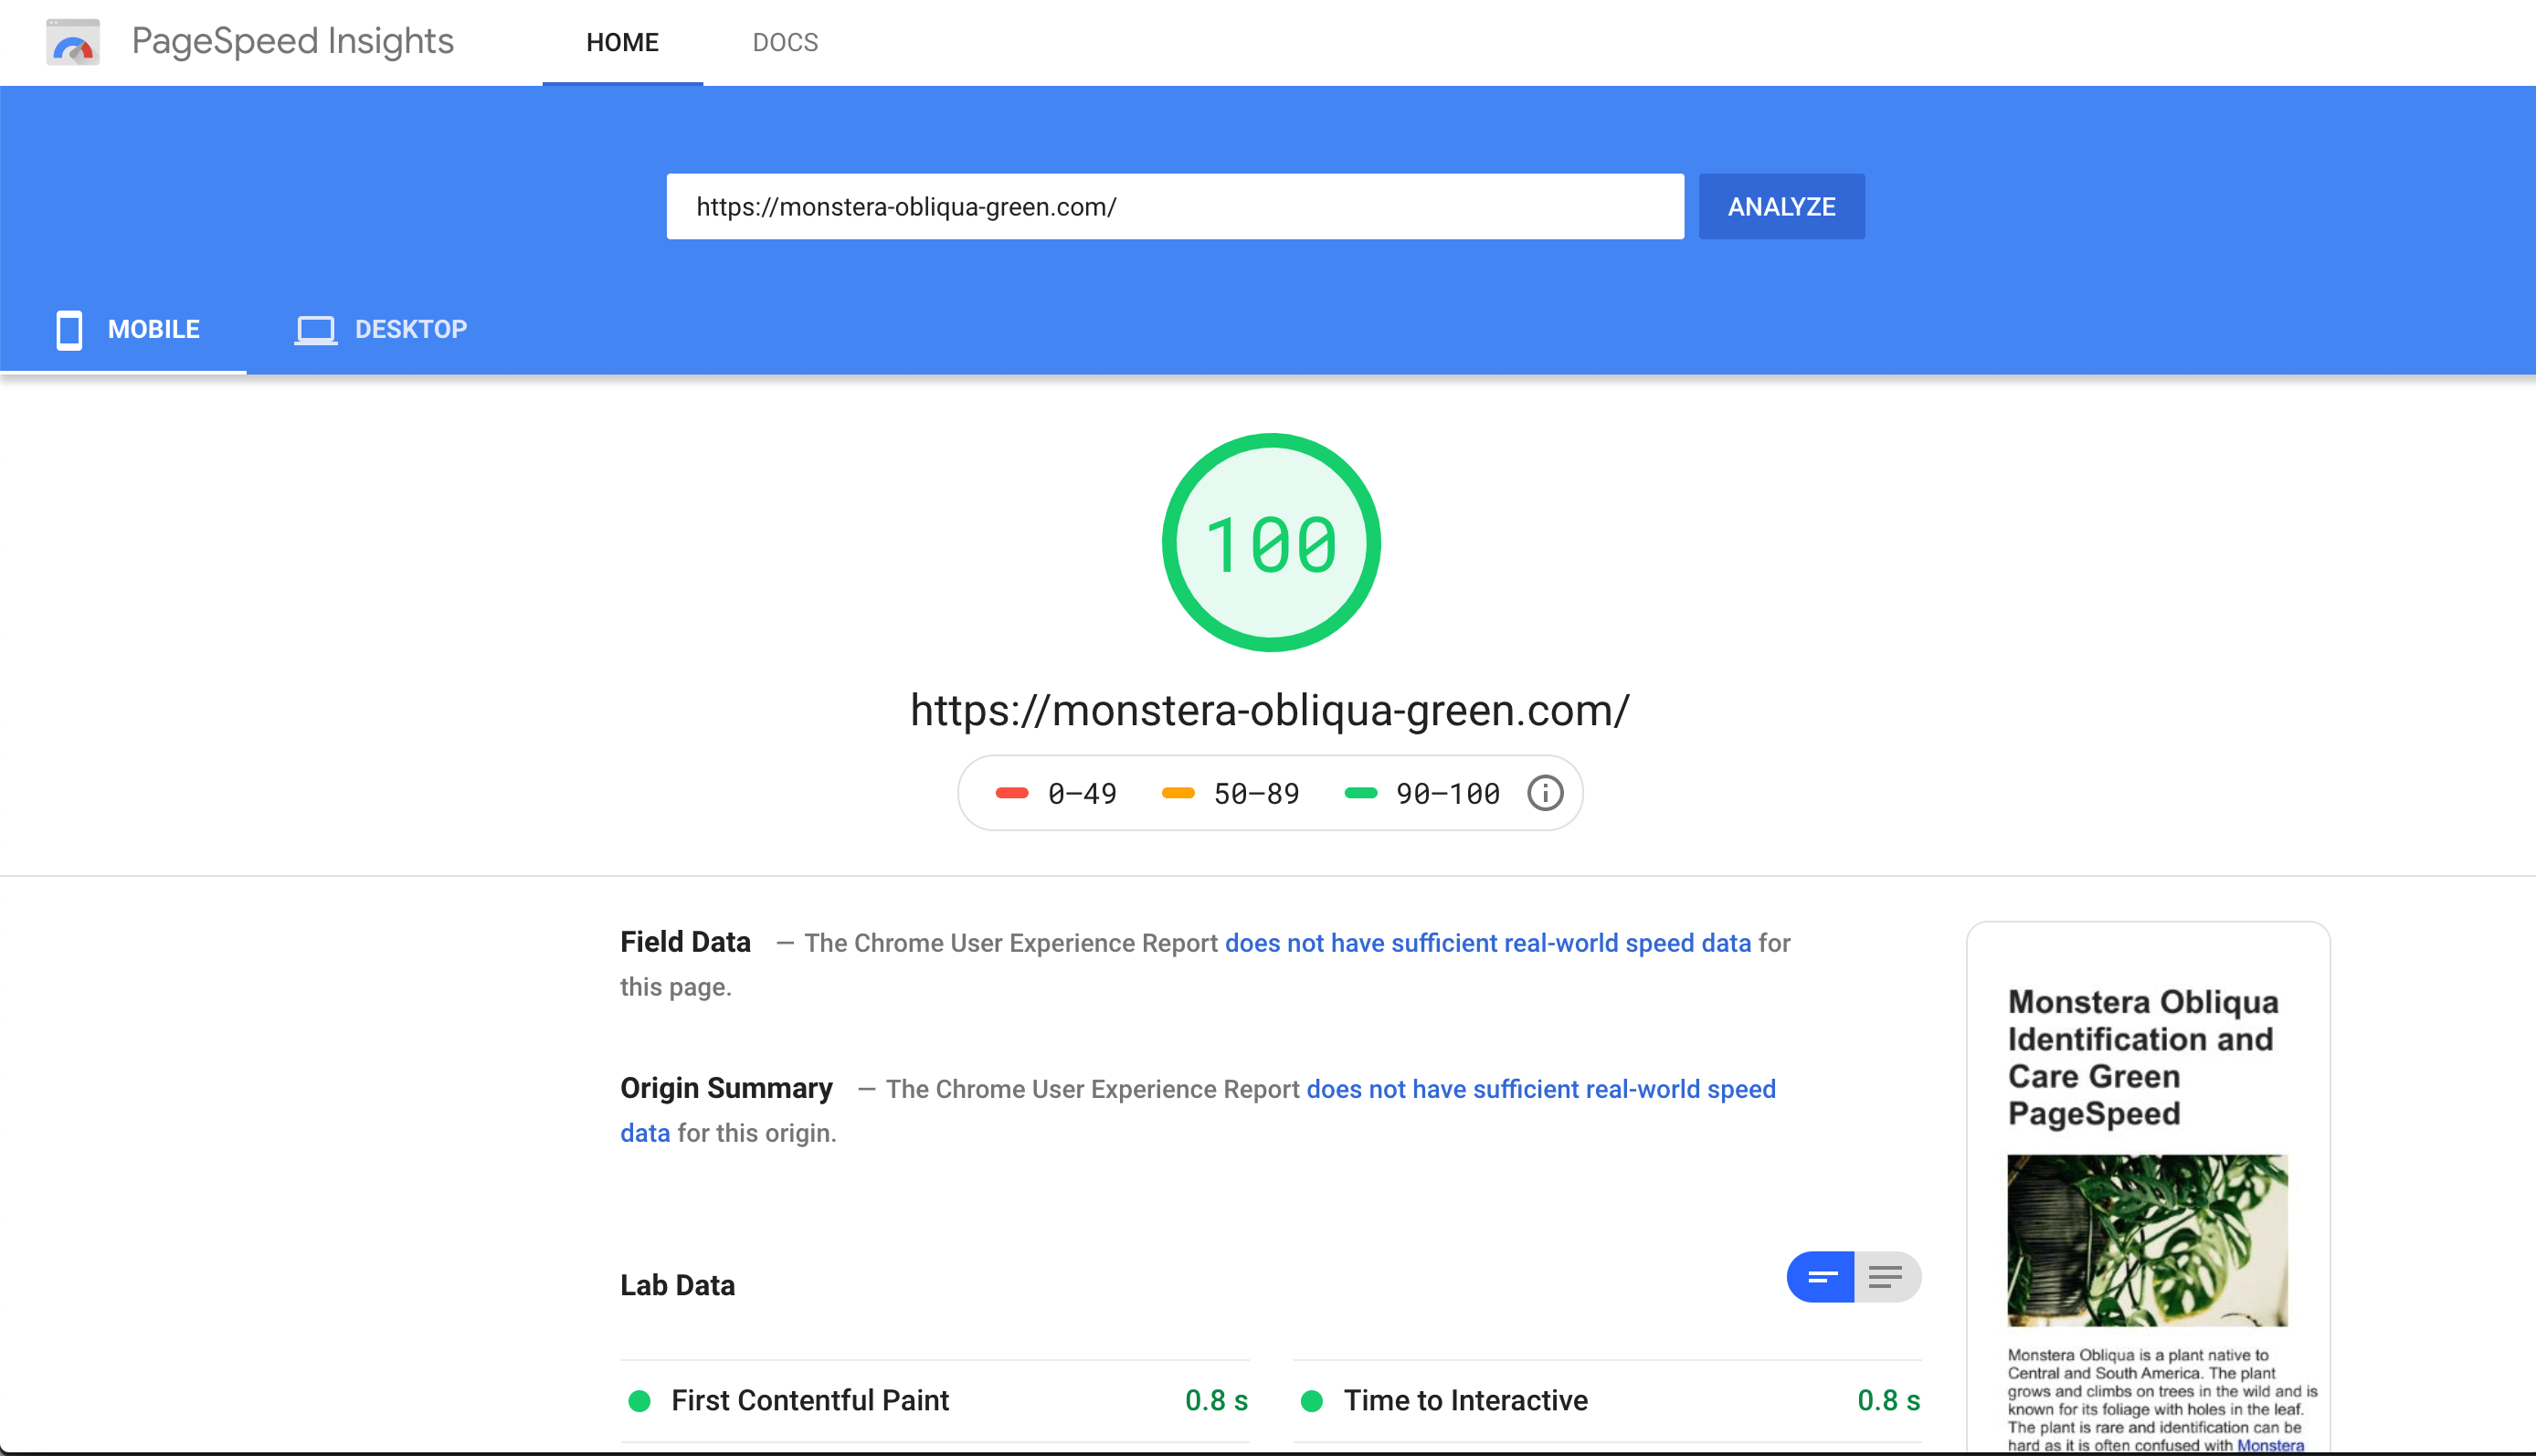 Green page speed score